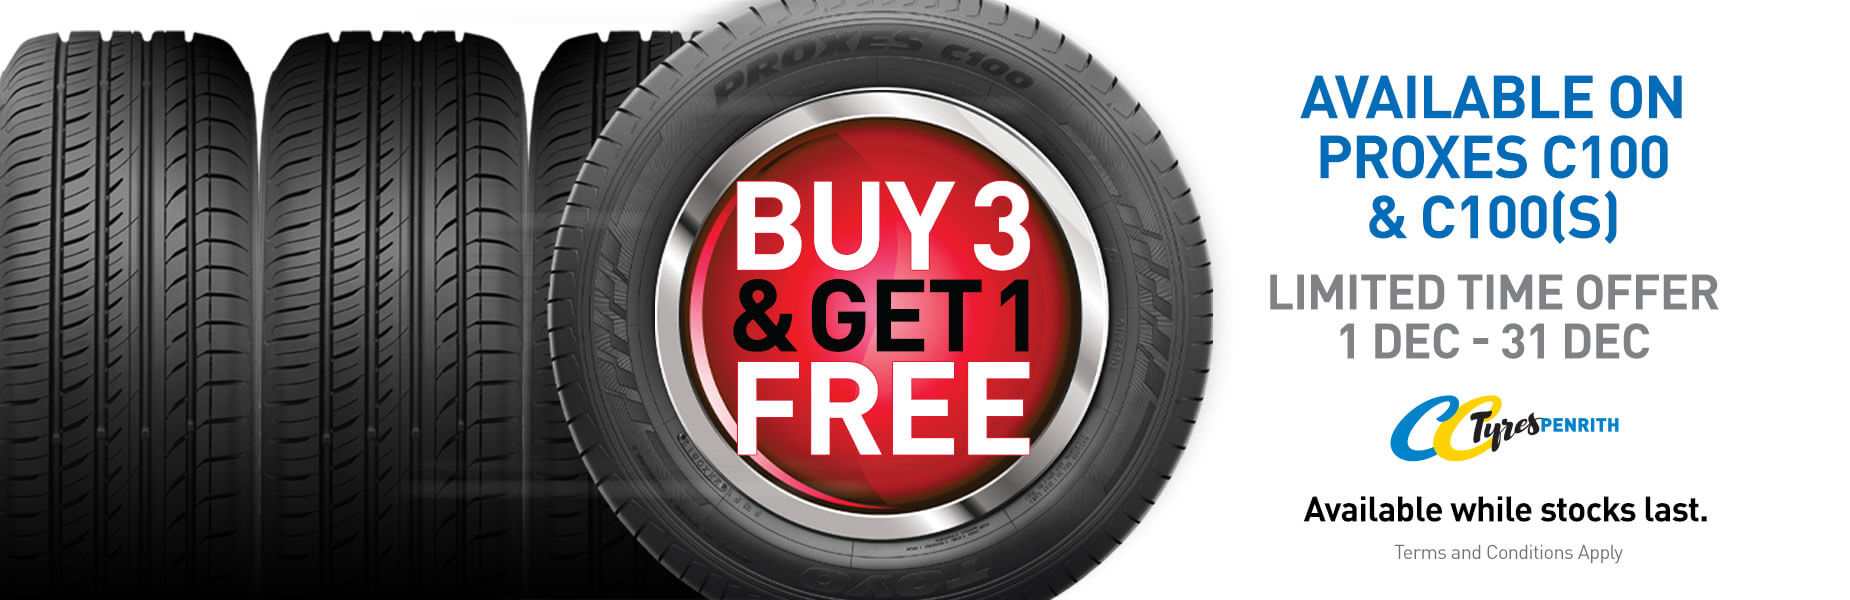 4 For 3 Toyo Tyres CC Penrith